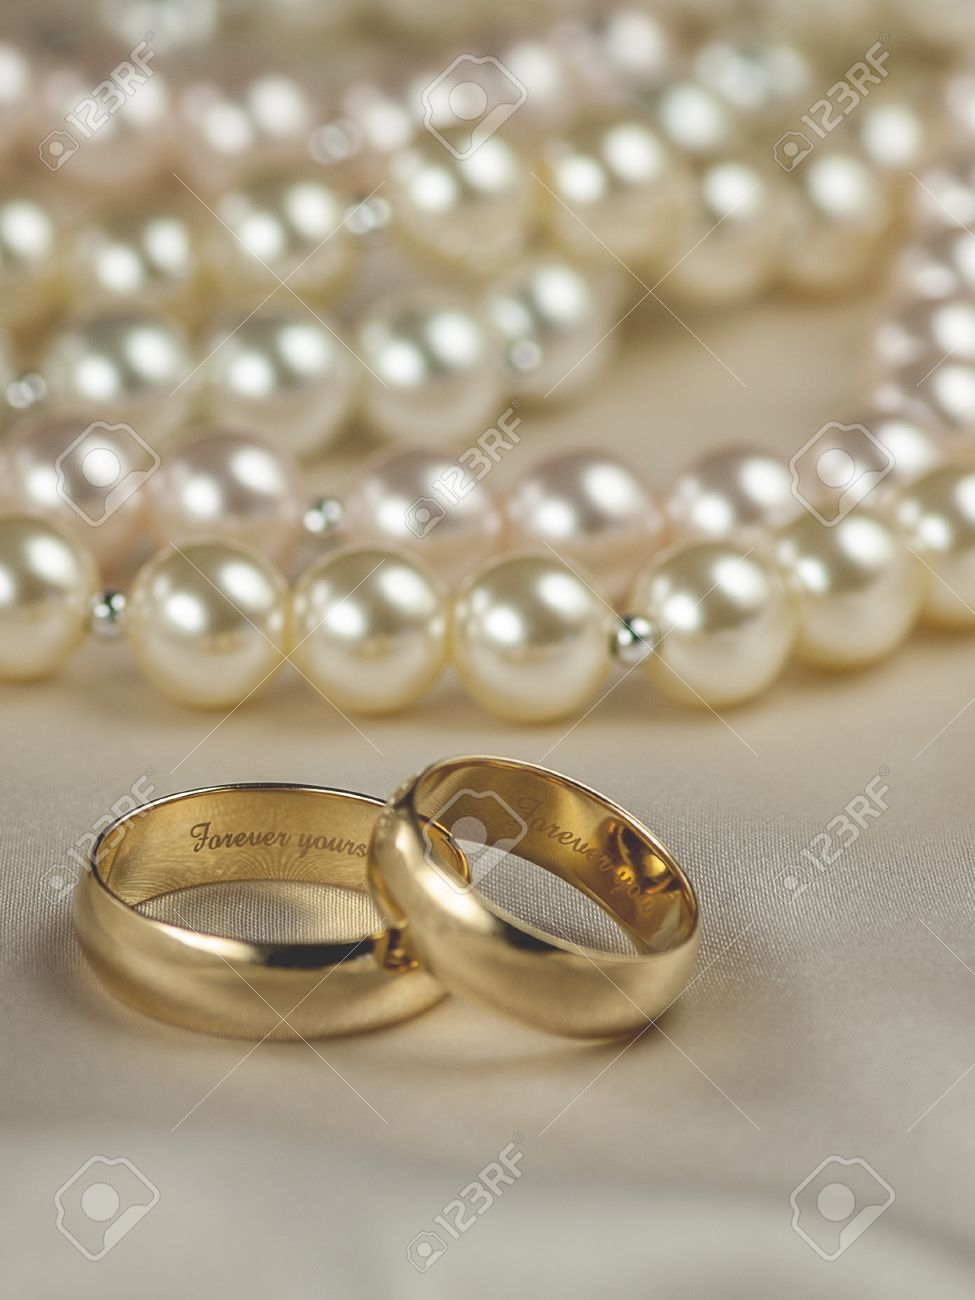 Pair Of Gold Wedding Rings With Pearl Background; Focus On Interior Ring  Engraving: Forever